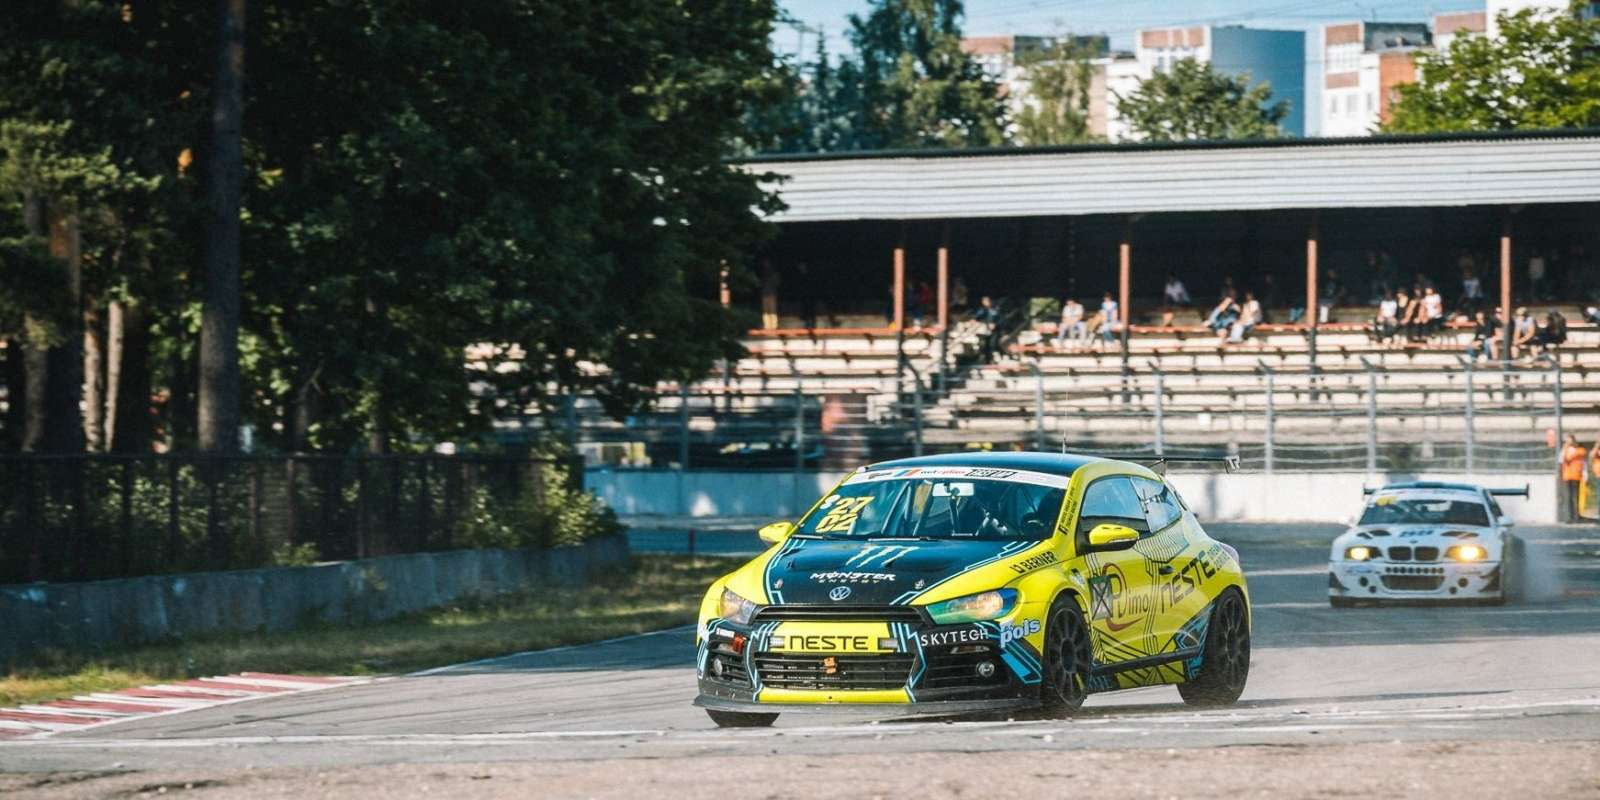 Lithuanian car racing championship Fast Lap Stage 2 in Riga, Latvia